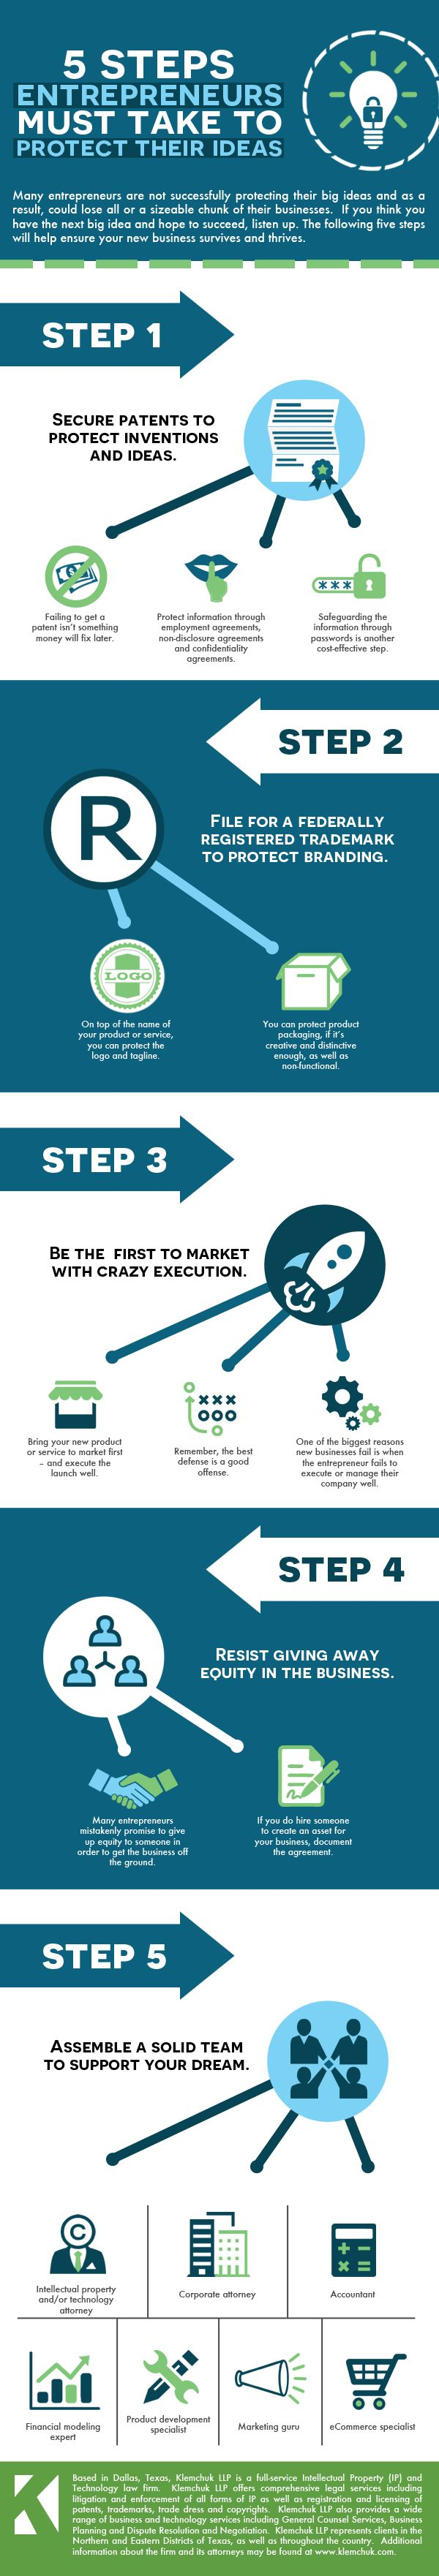 5 steps entrepreneurs must take to protect their ideas. Infographic content authored by the intellectual property law firm of Klemchuk LLP.